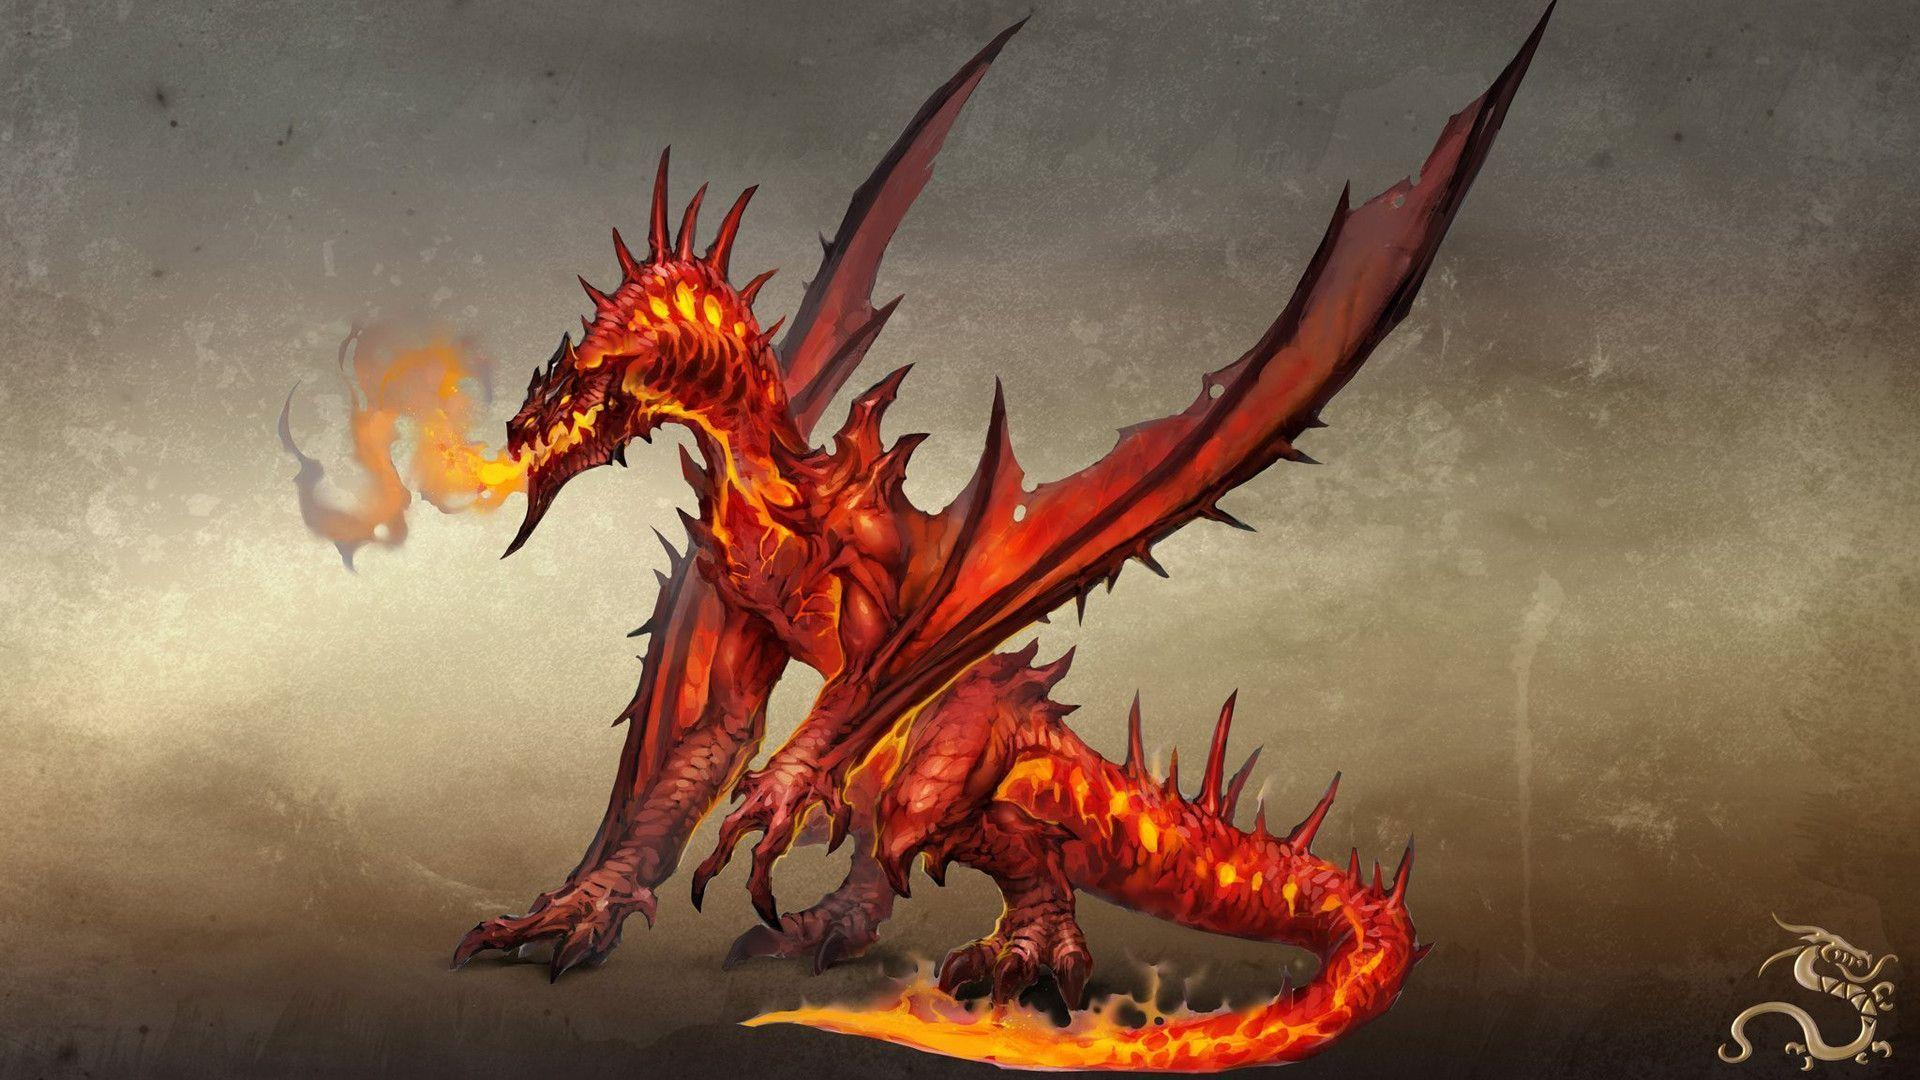 red dragons wallpaper - photo #22